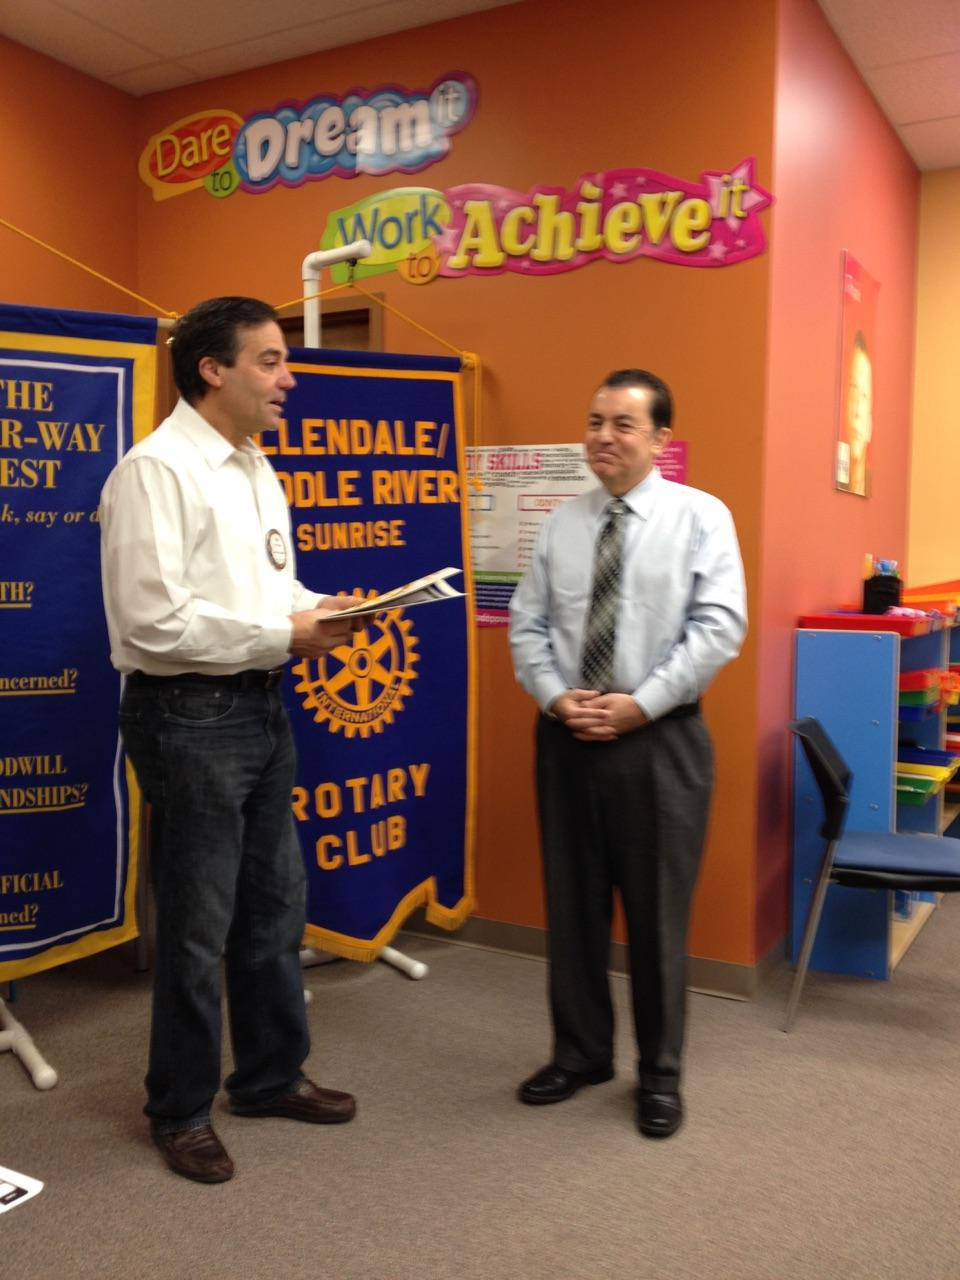 Stories Rotary Club Allendale Saddle River